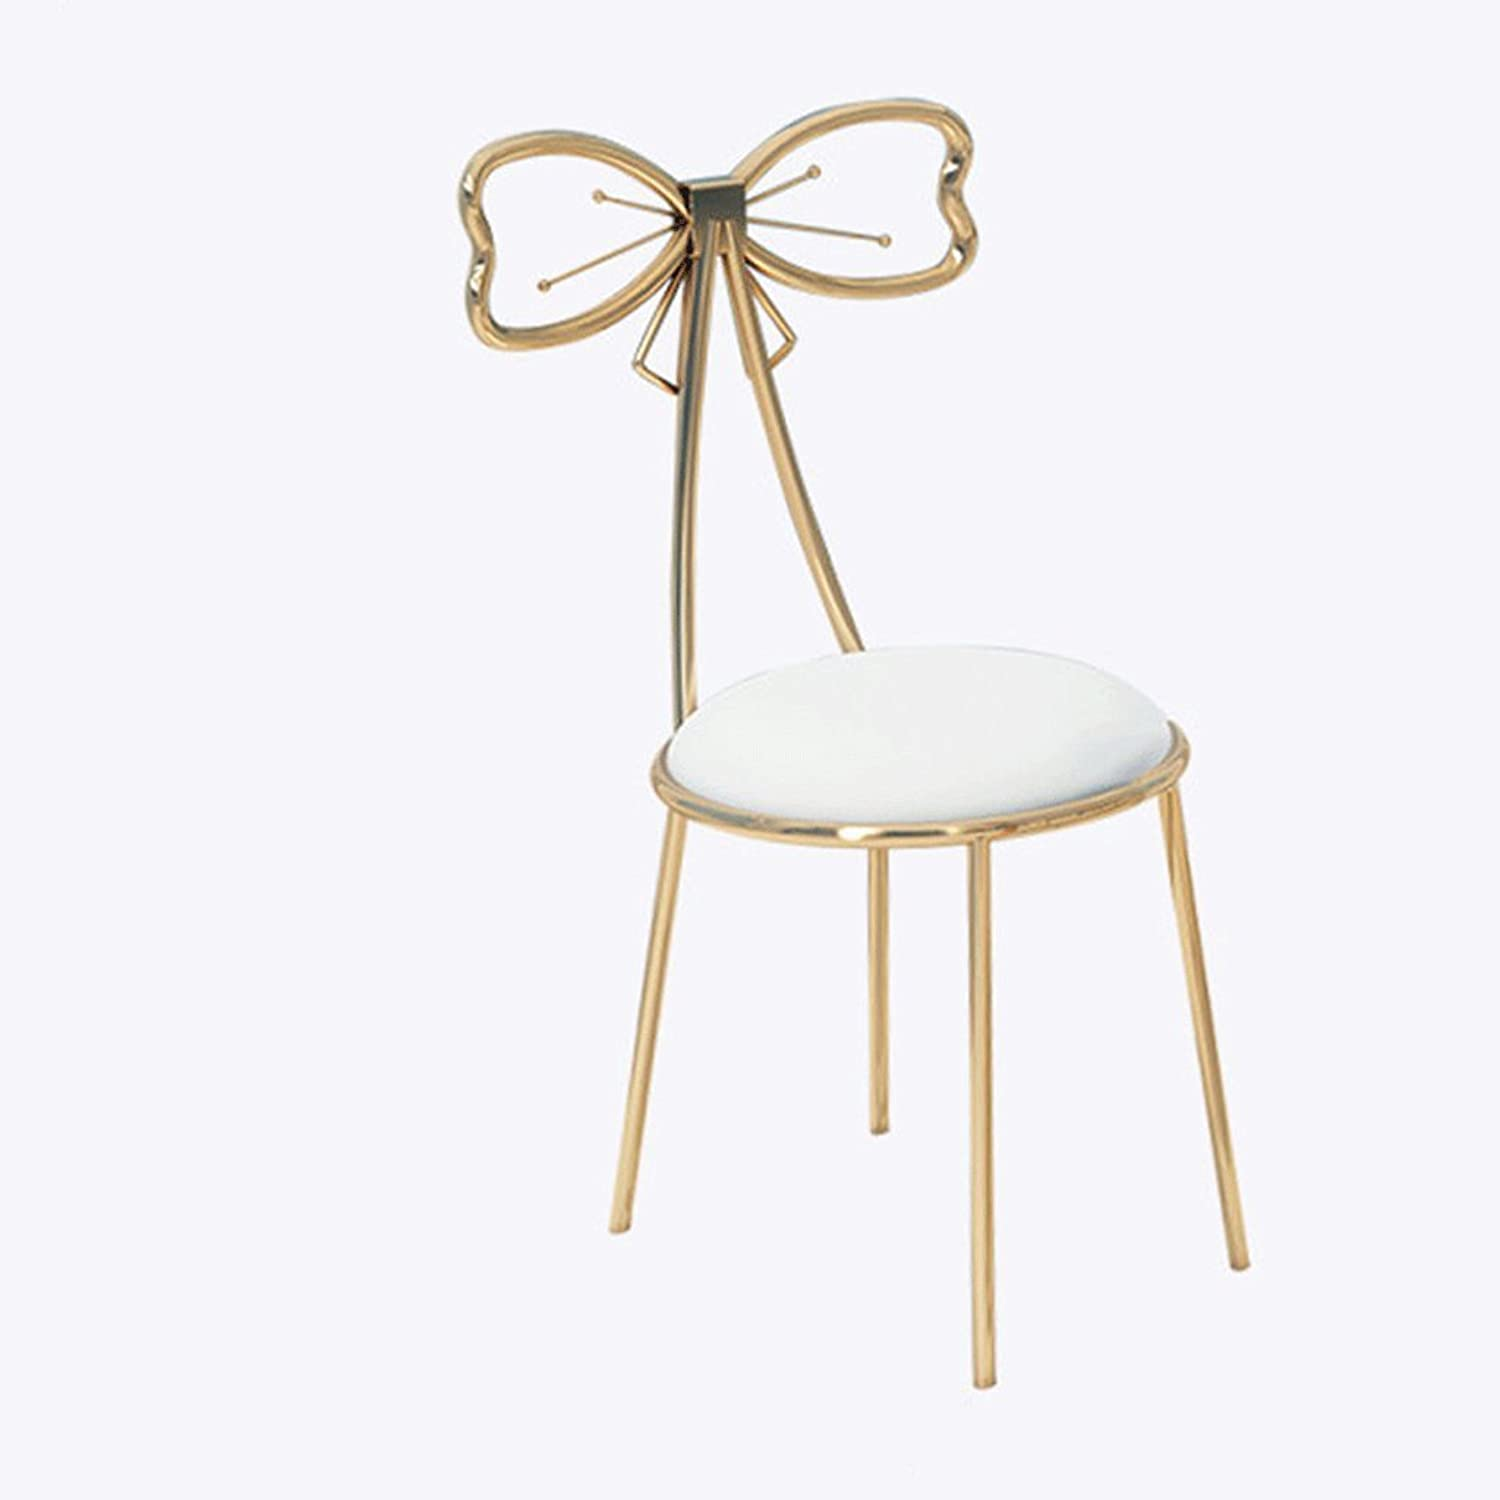 Nordic Wrought-Iron Bar Stool, Simple and Stylish Dining Chair, Creative Backrest Chair